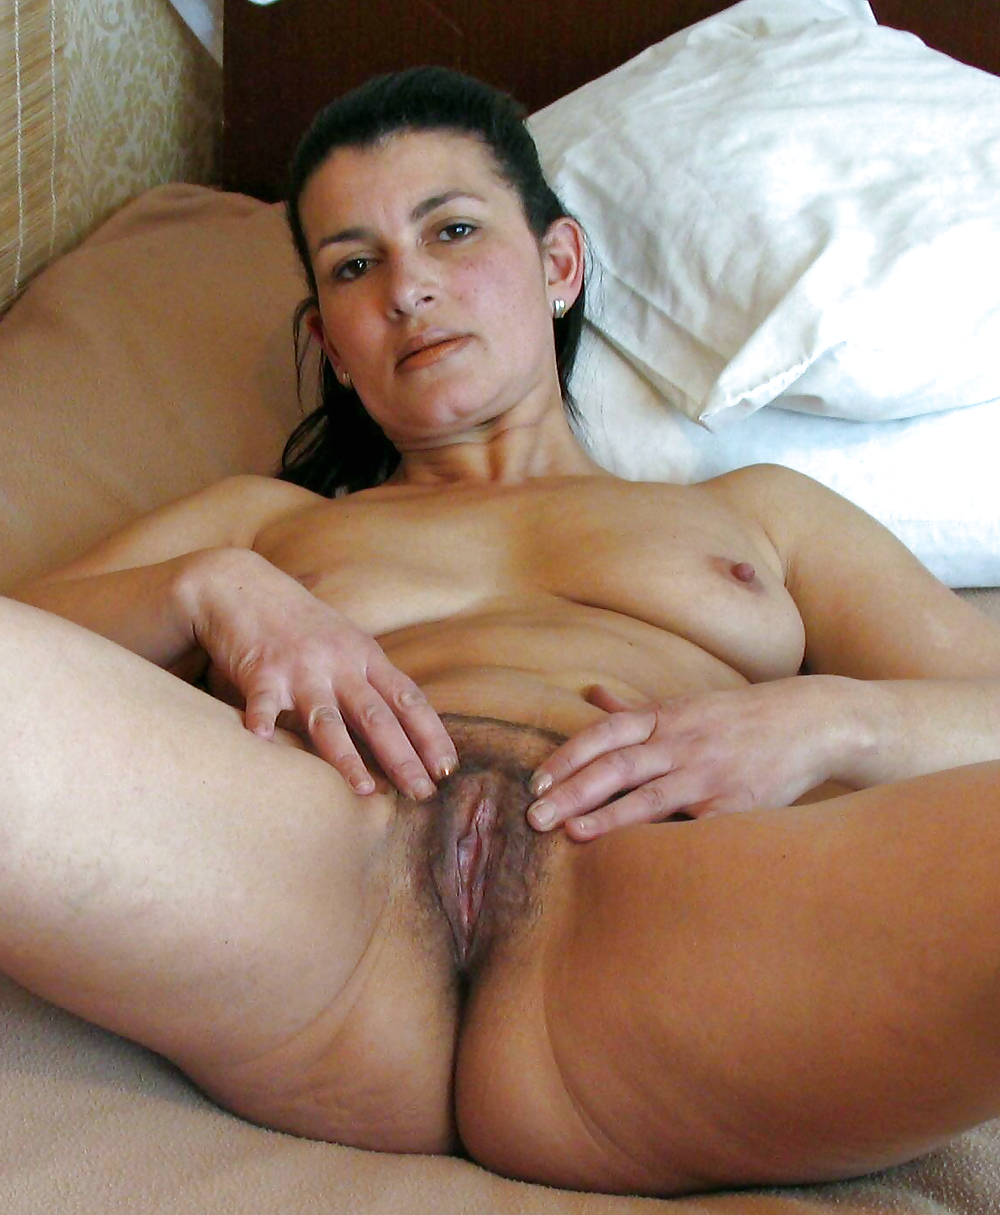 porn video 2020 Drunk softcore missionary freckles